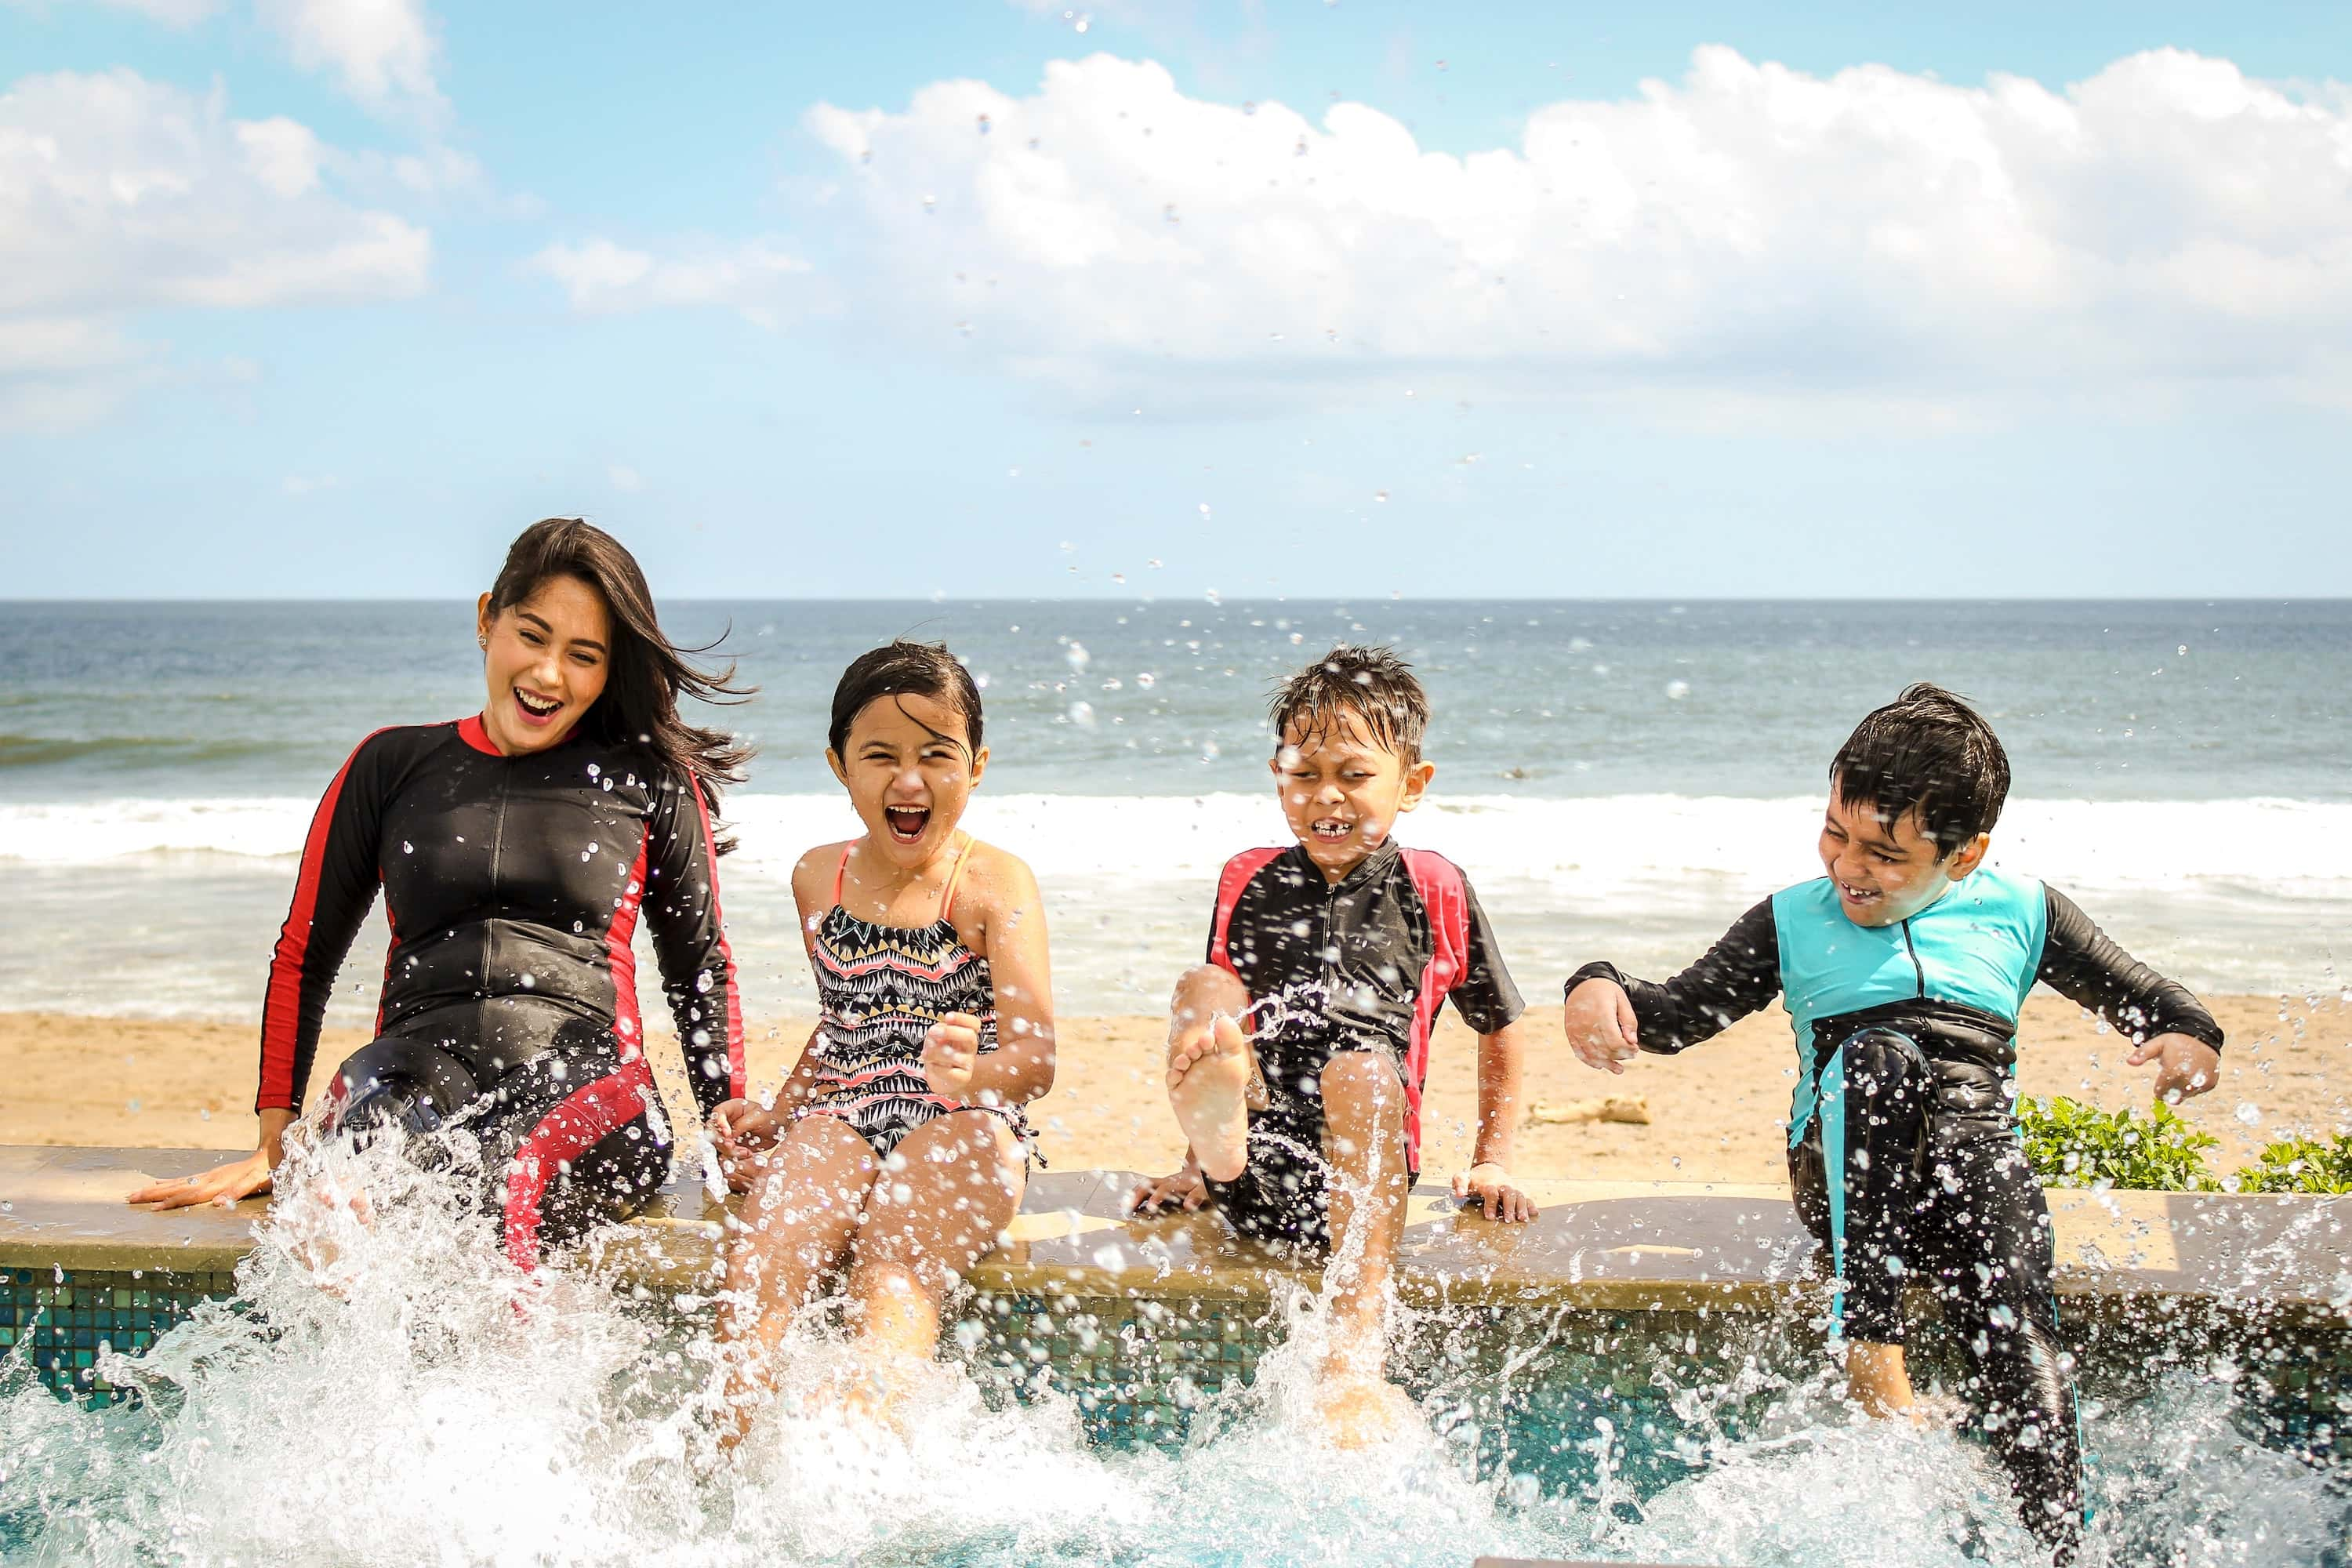 A mom and her three kids play in the surf.